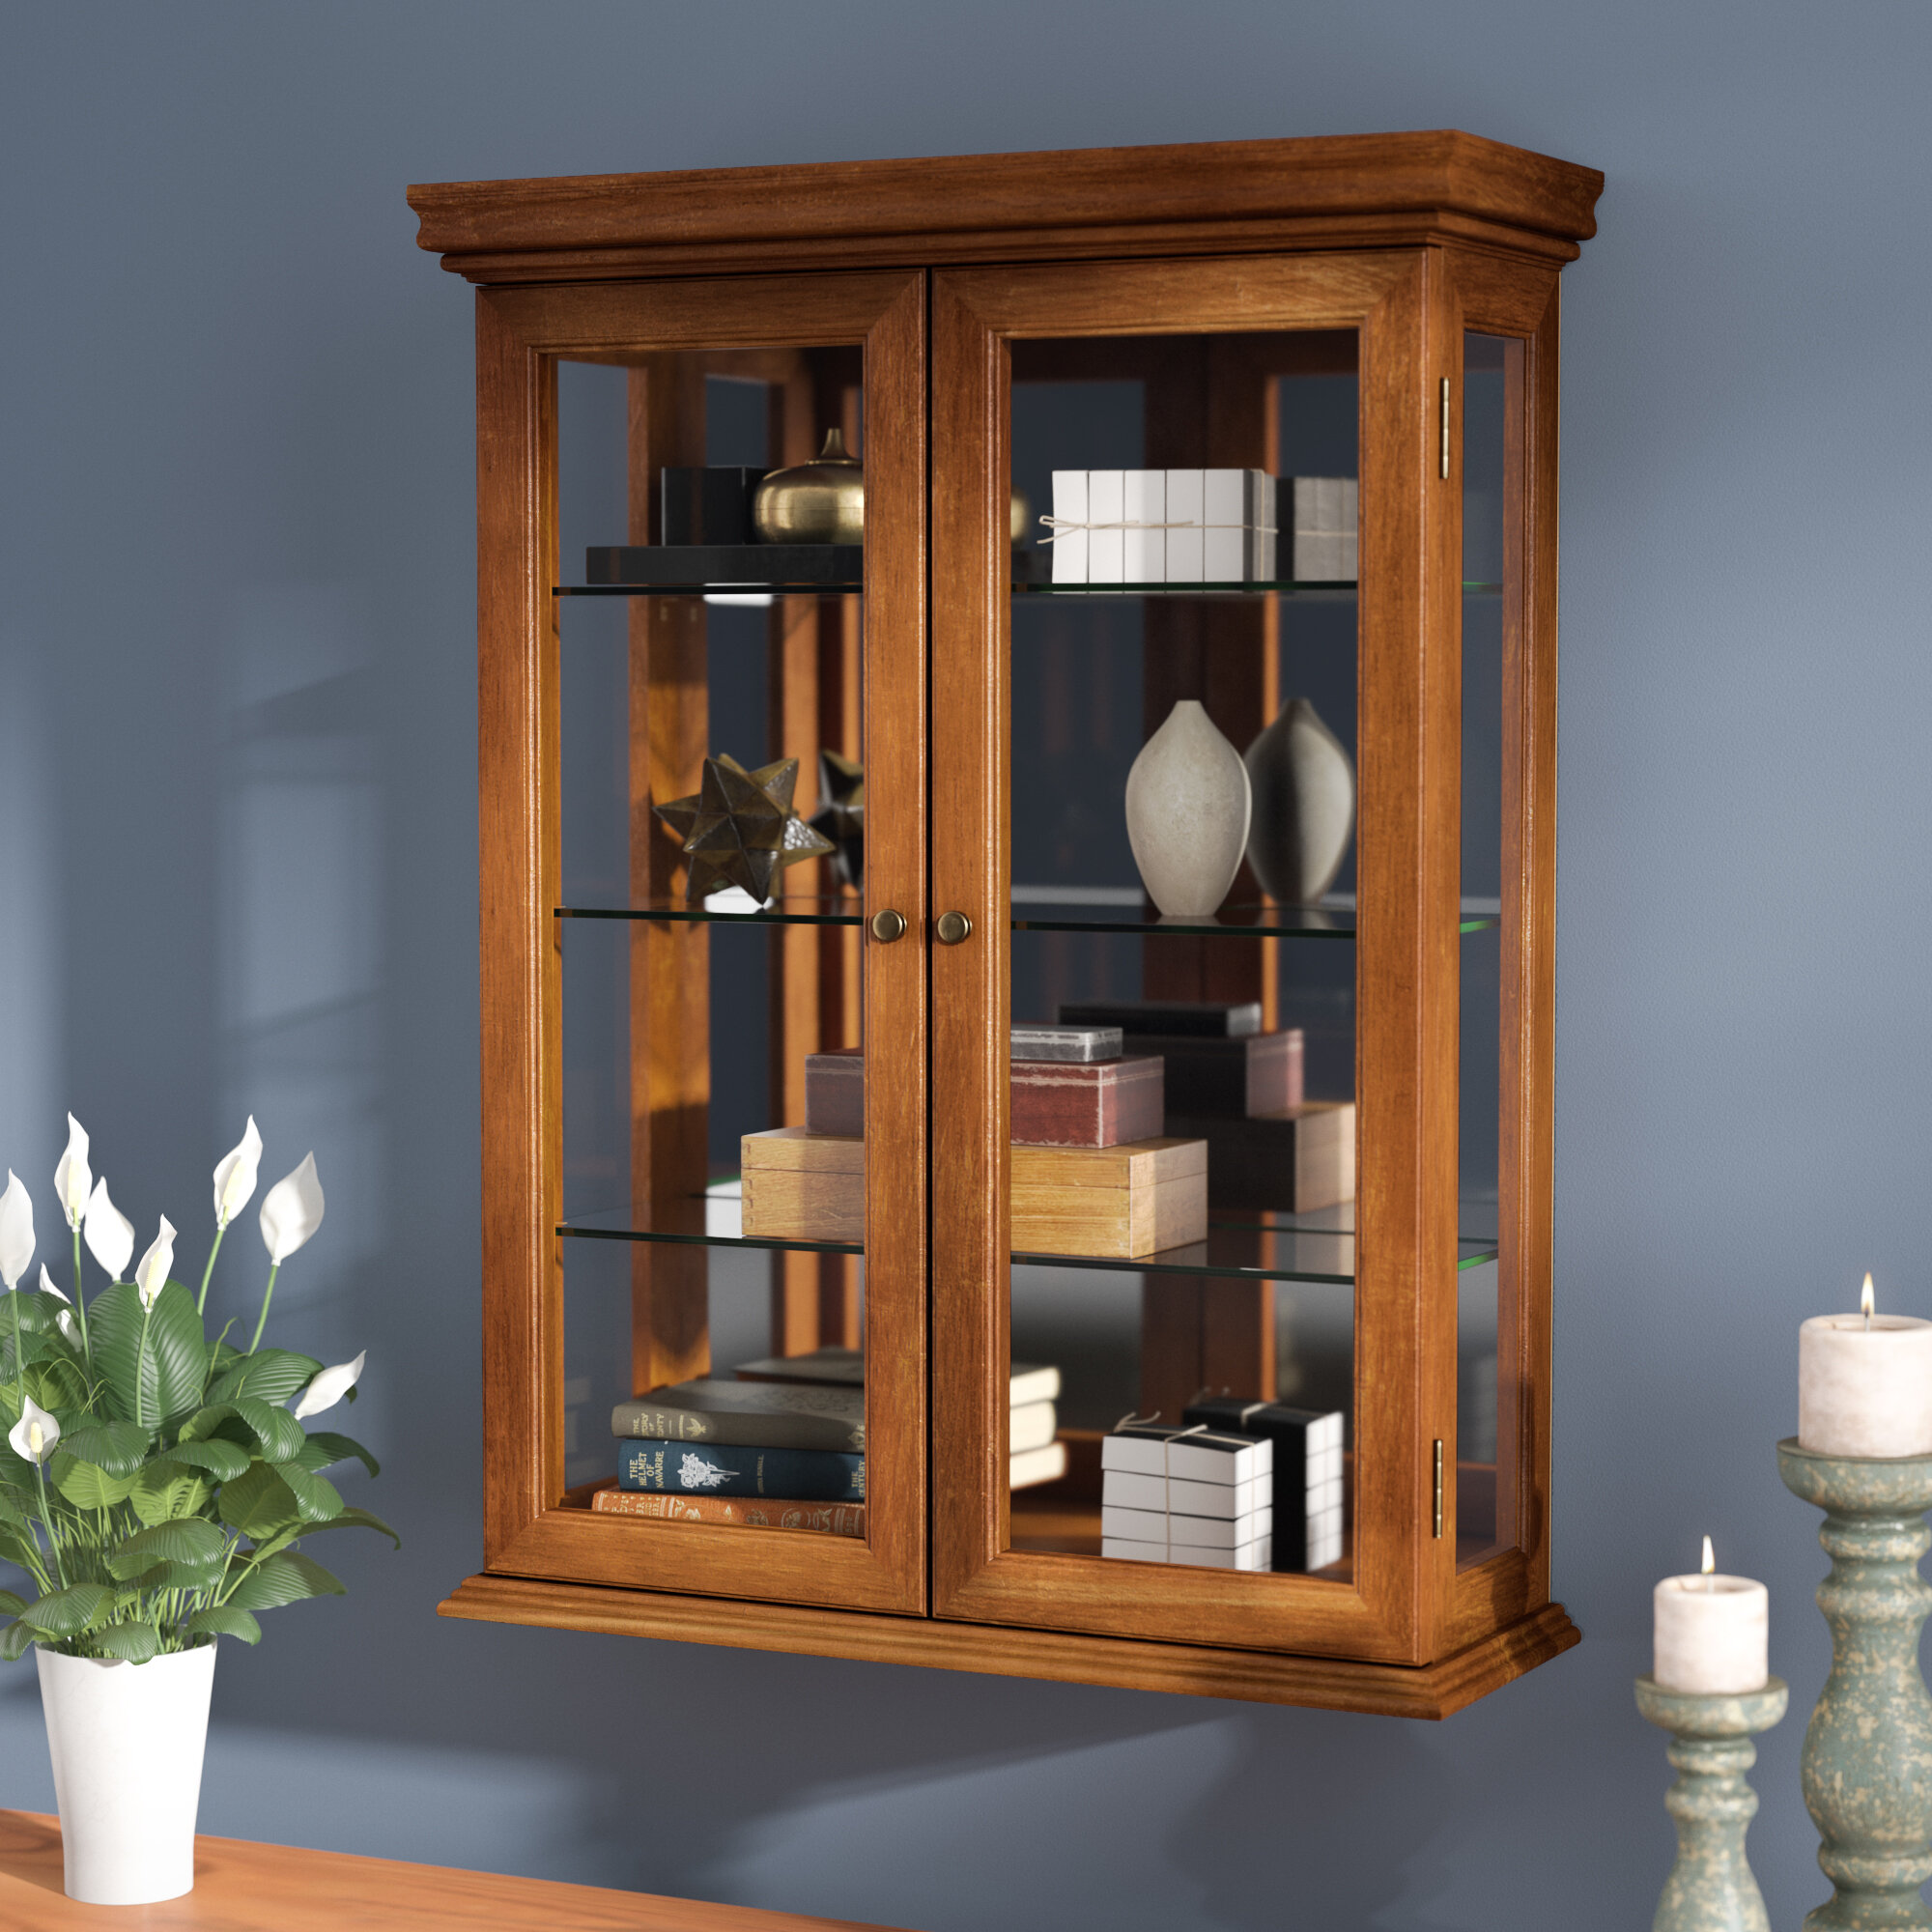 Charlton Home Cette Wall Mounted Curio Cabinet Reviews Wayfair